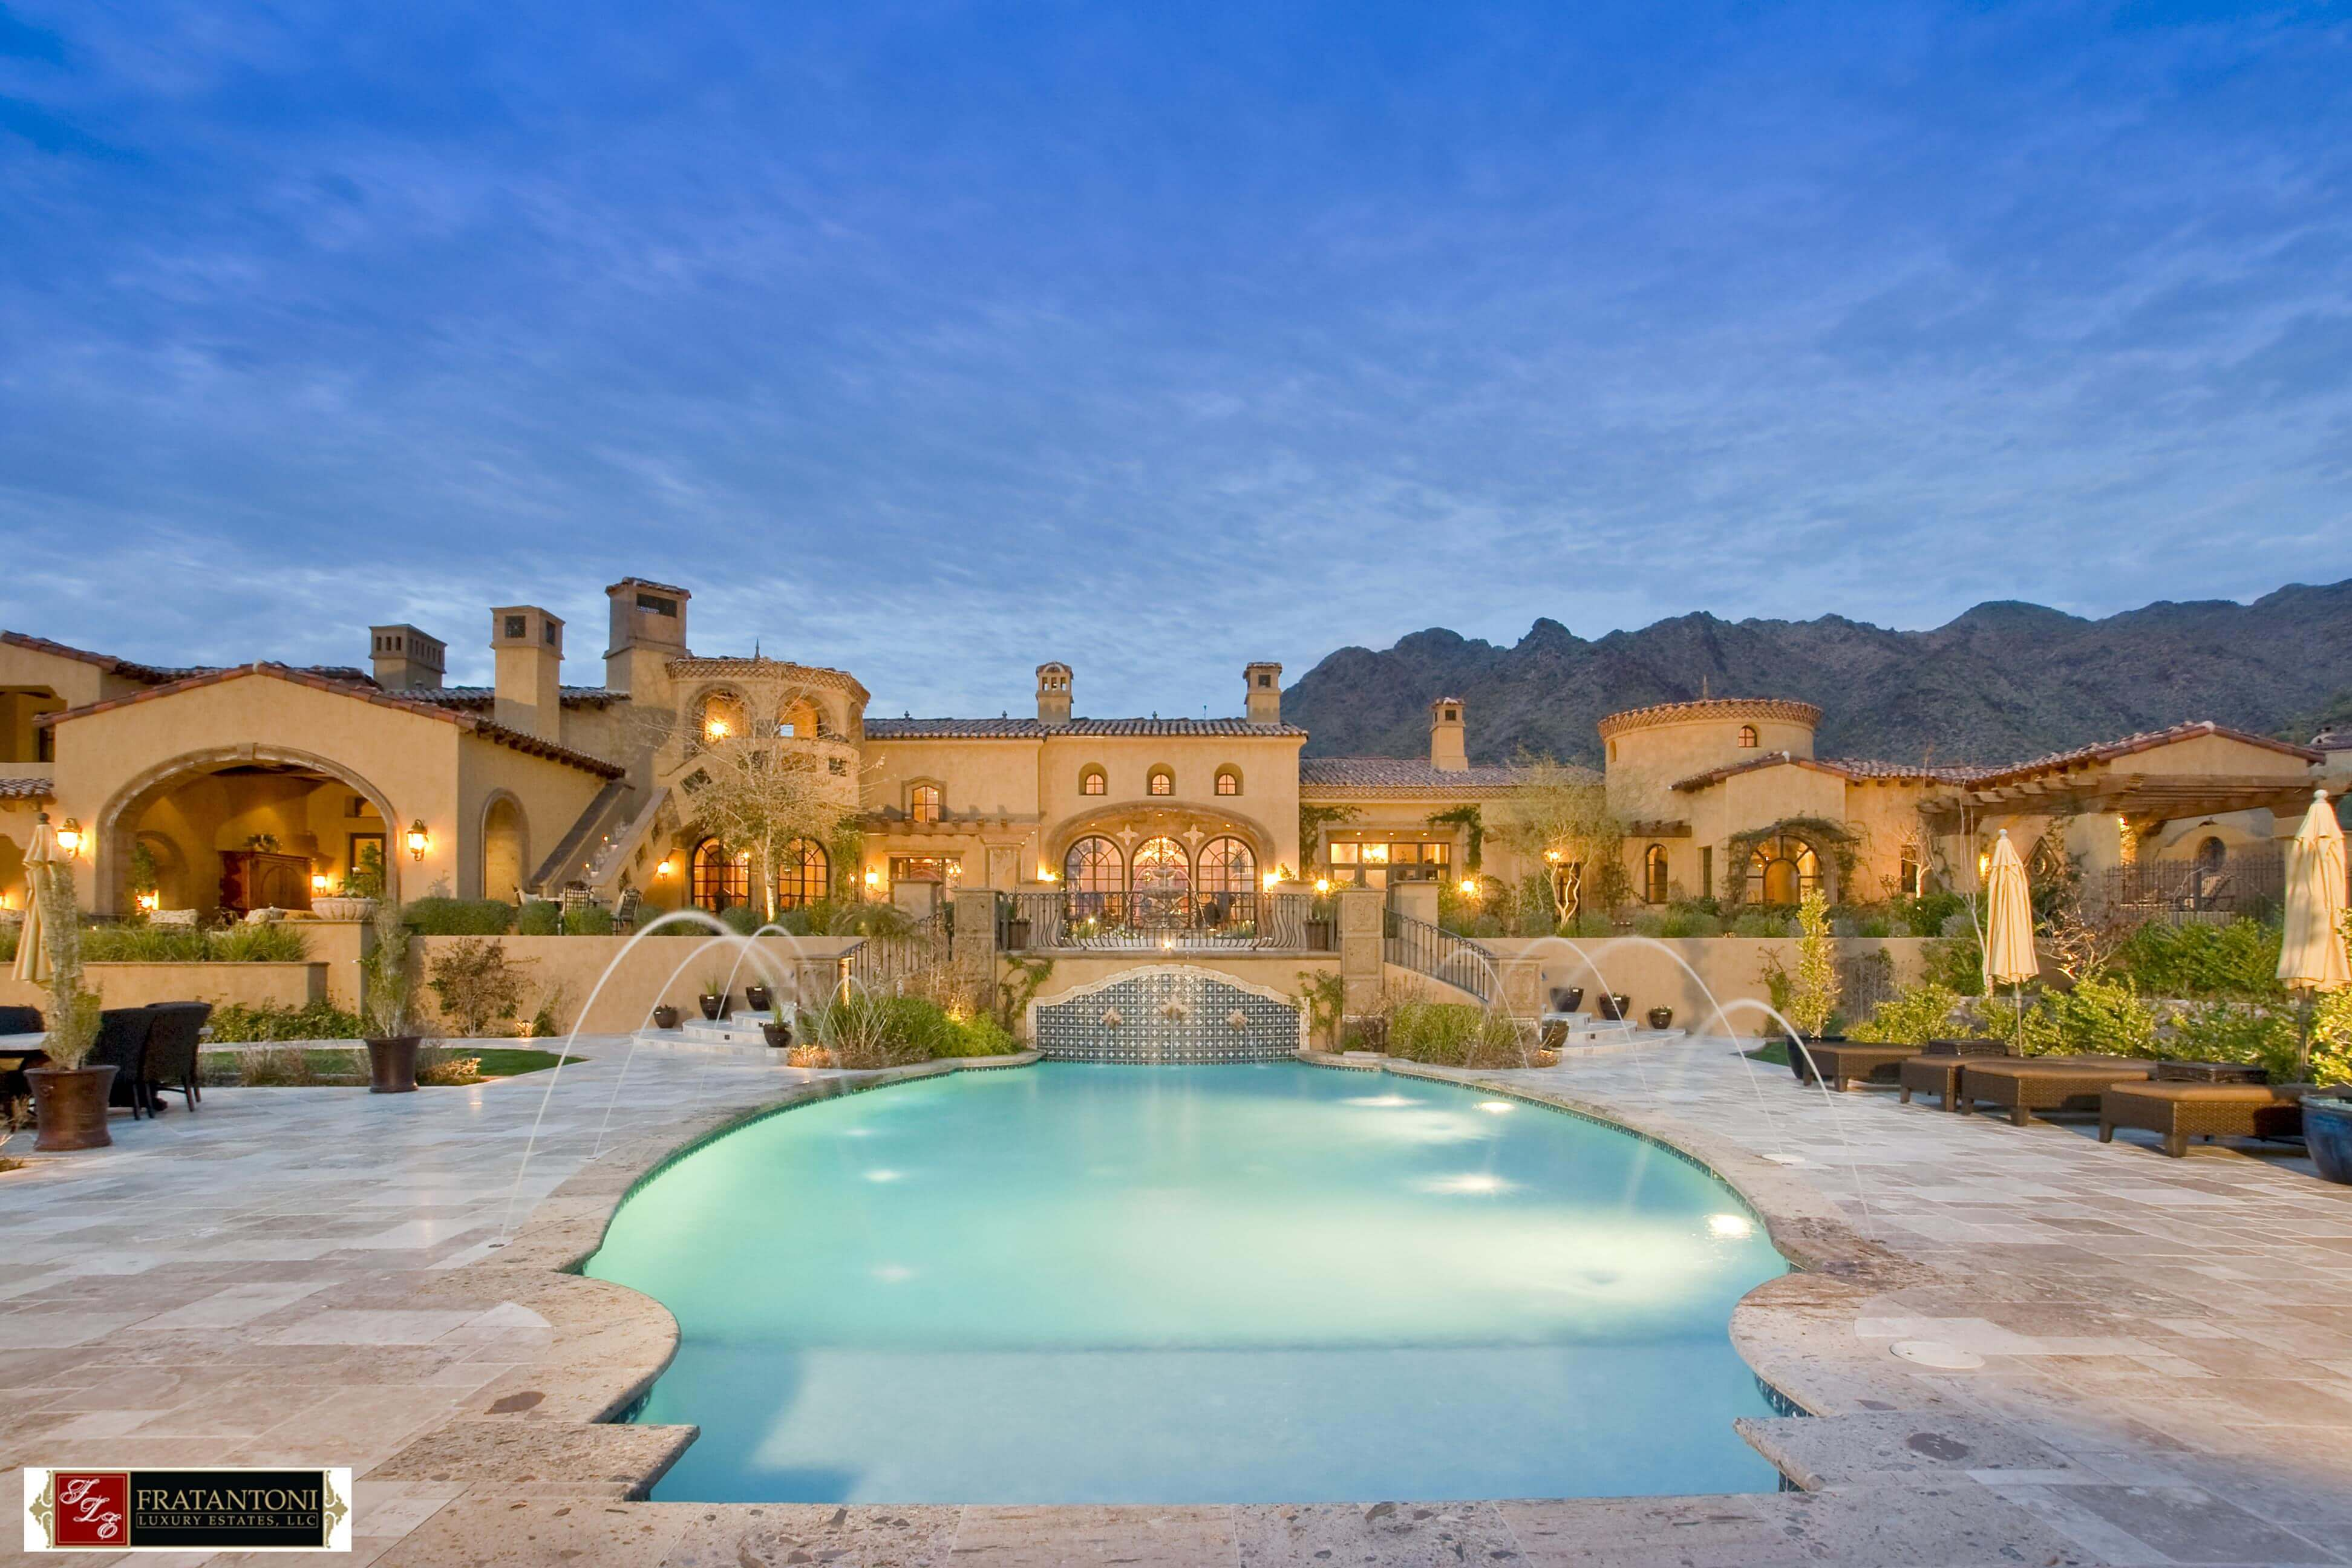 14-Pool-Coping-and-Beautiful-Rear-Yard-Escape-in-Stone